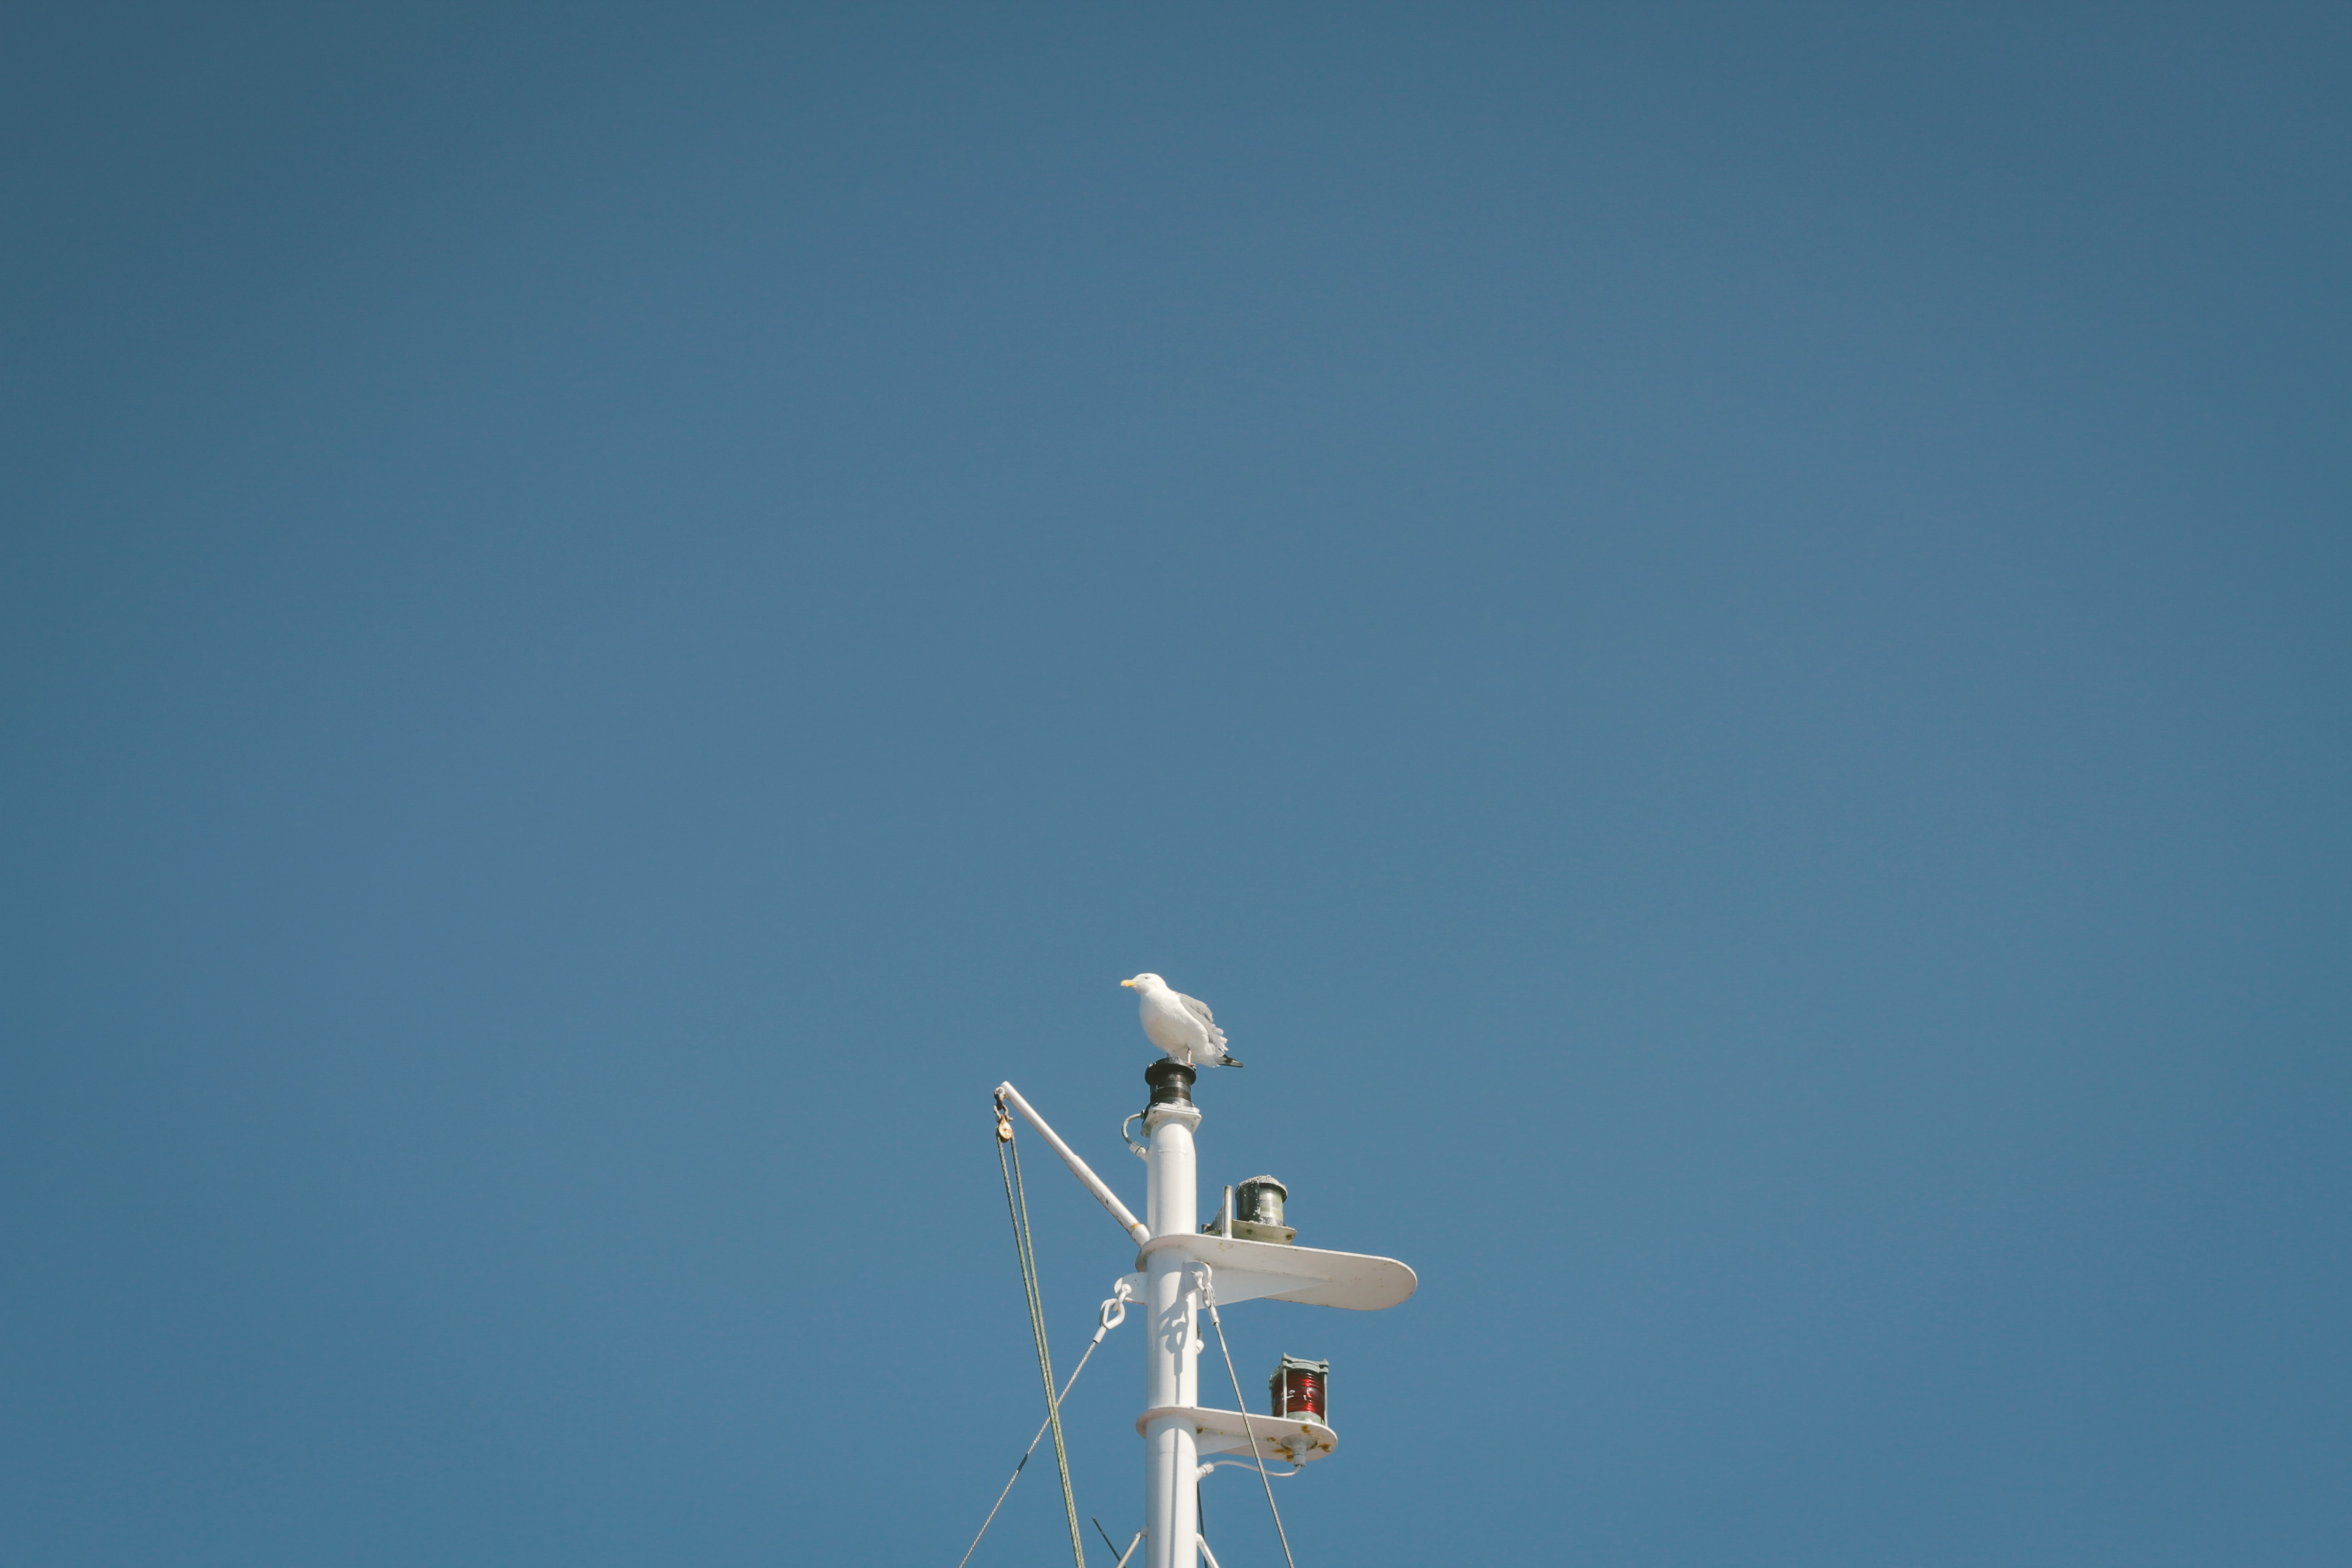 Seagull perched at the top of a boat mast against a blue sky